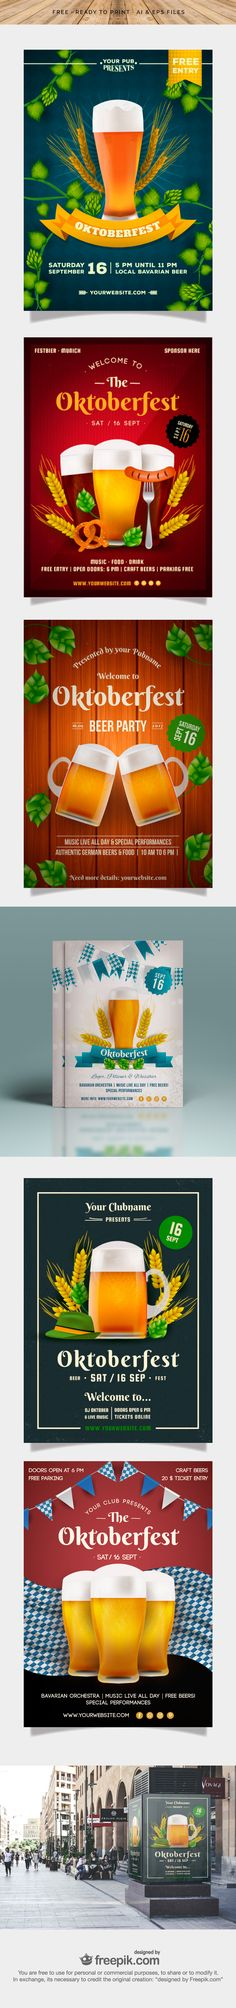 Free Download : Awesome Oktoberfest Posters (Ready To Print)